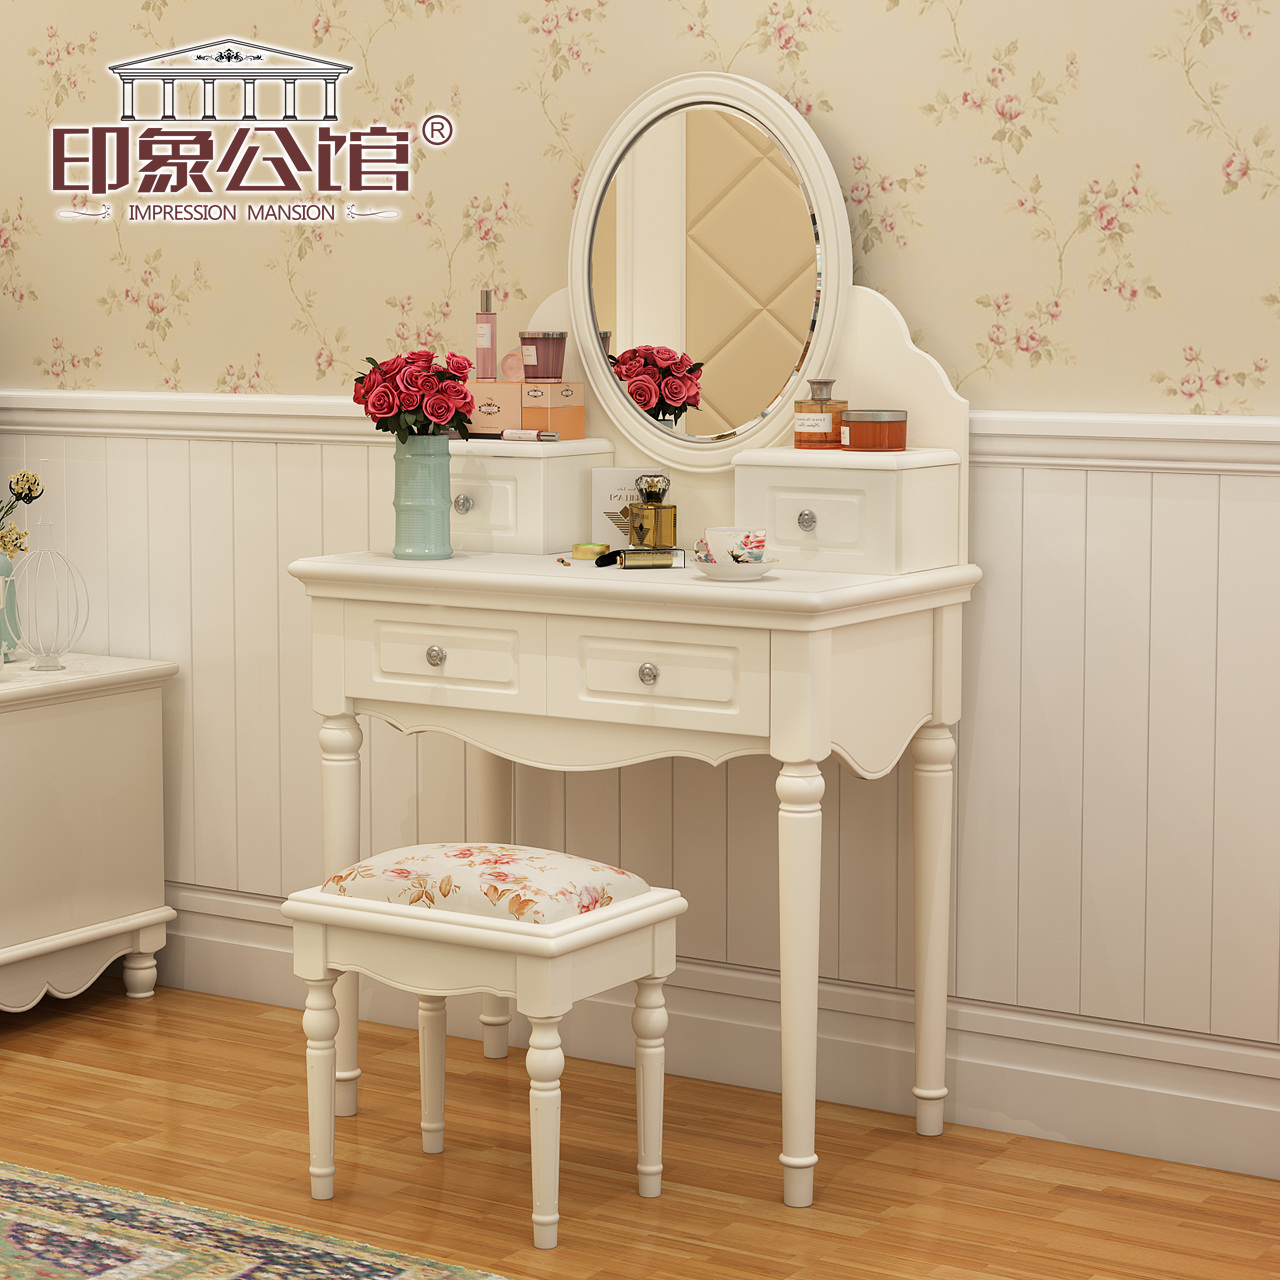 Impression mansion garden furniture solid wood dresser dressing table dressing table vanity mirror dressing table white korean euclidian